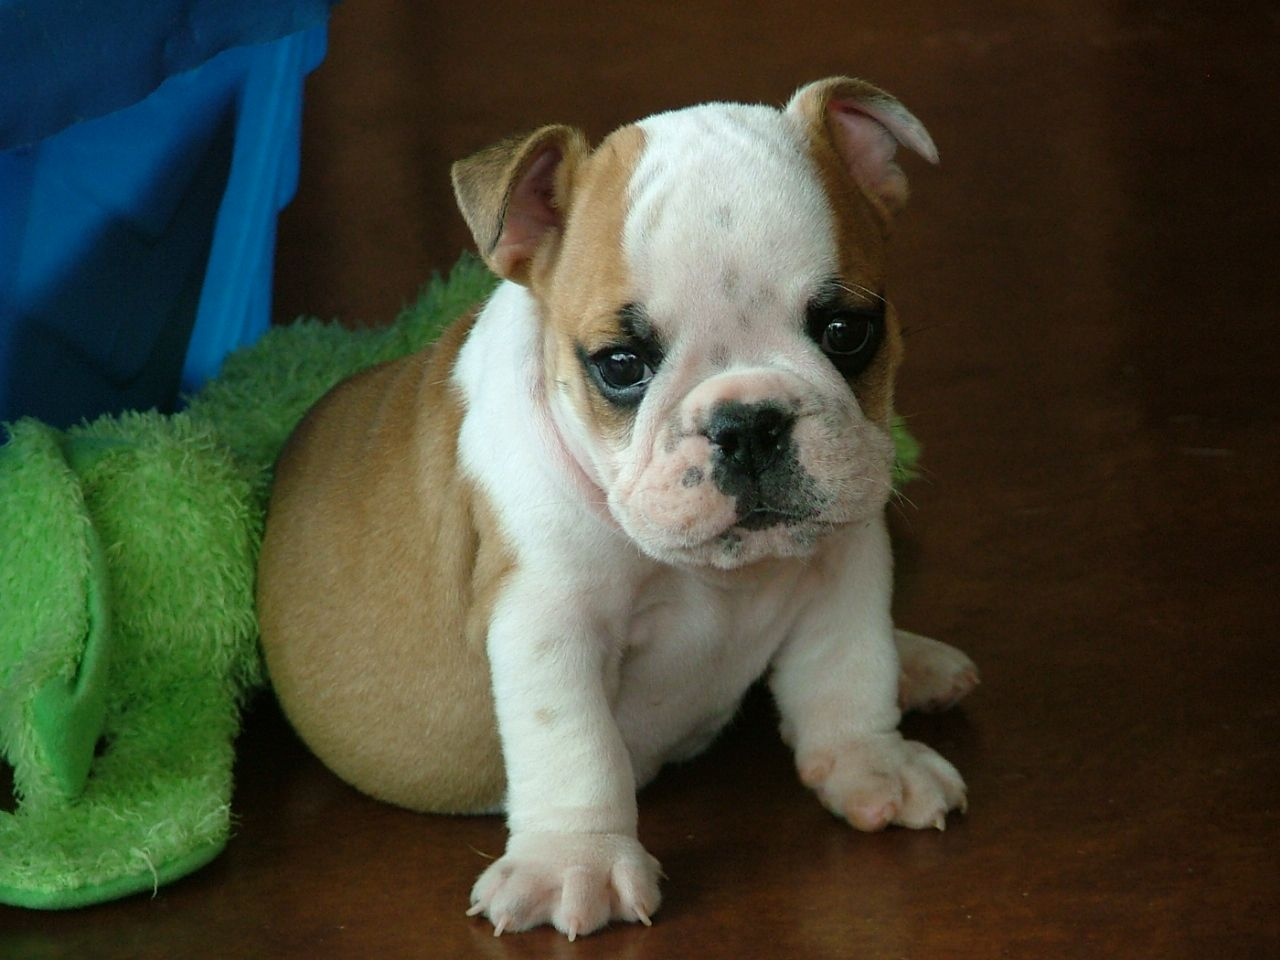 My Heart Has Melted English Bulldog Puppies English Bulldog English Bulldog Puppy